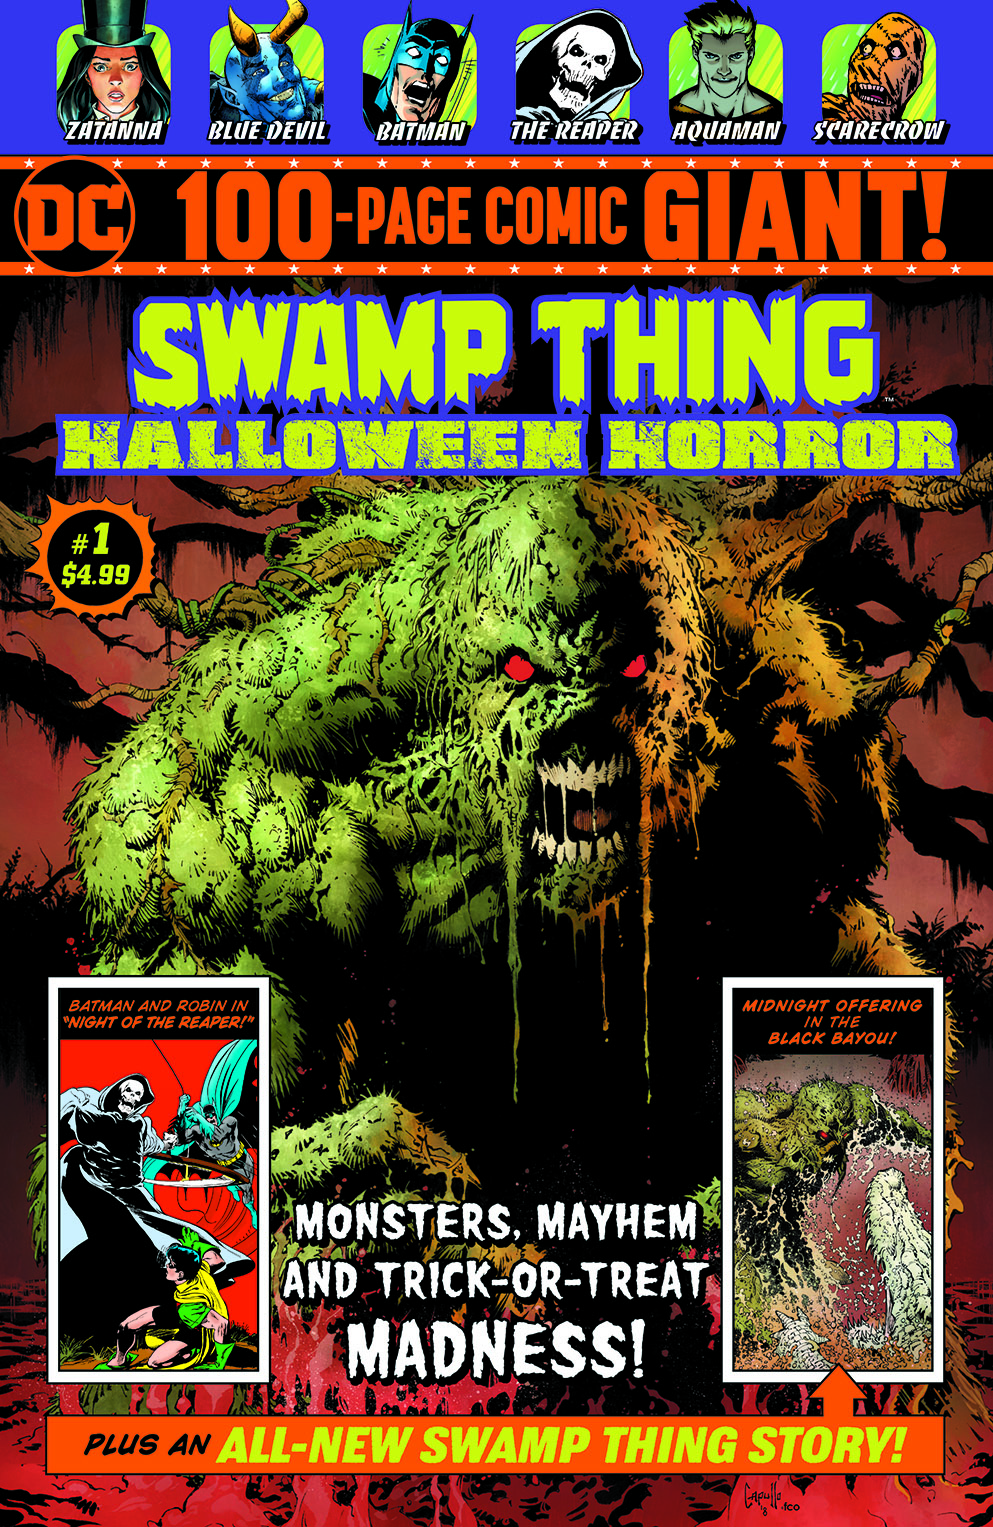 SWAMP THING HALLOWEEN HORROR SPECIAL